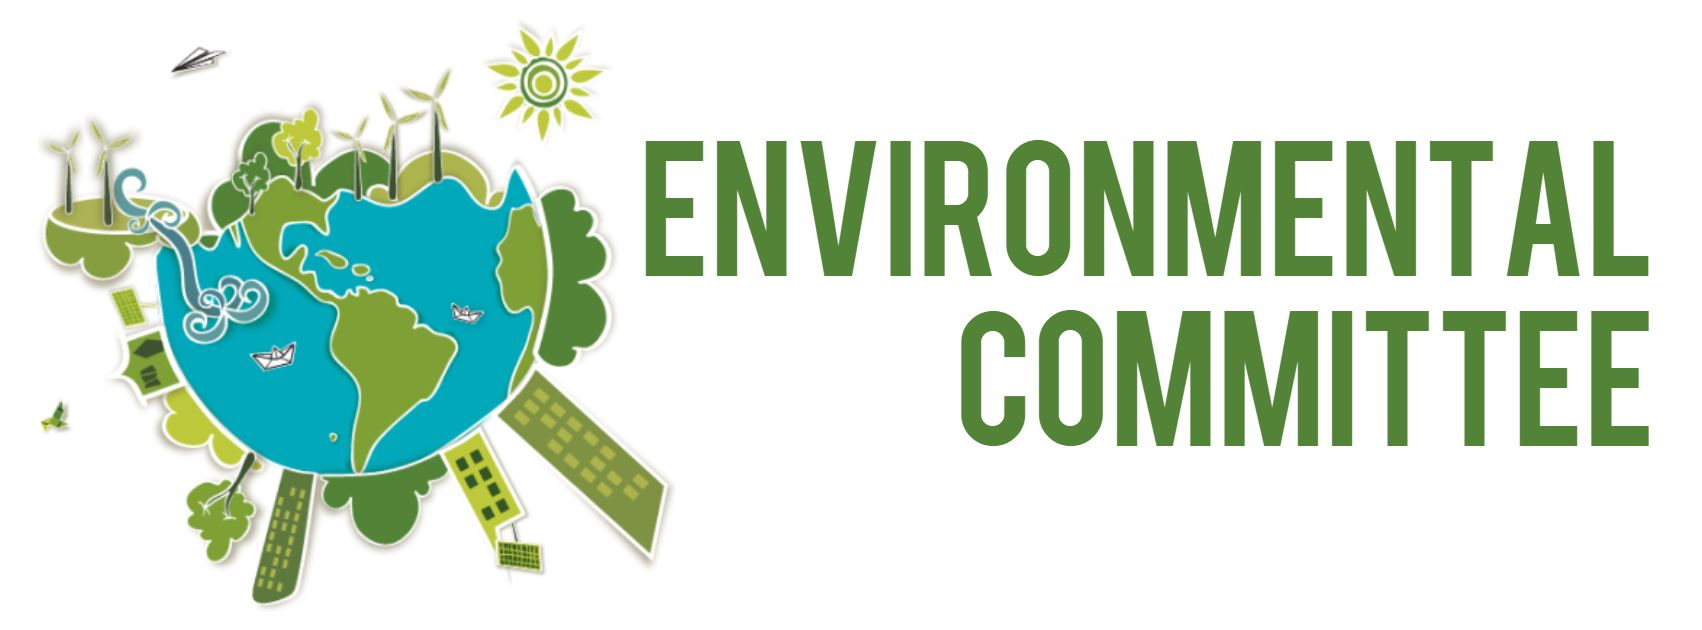 Environmental Committee graphic with globe and buildings